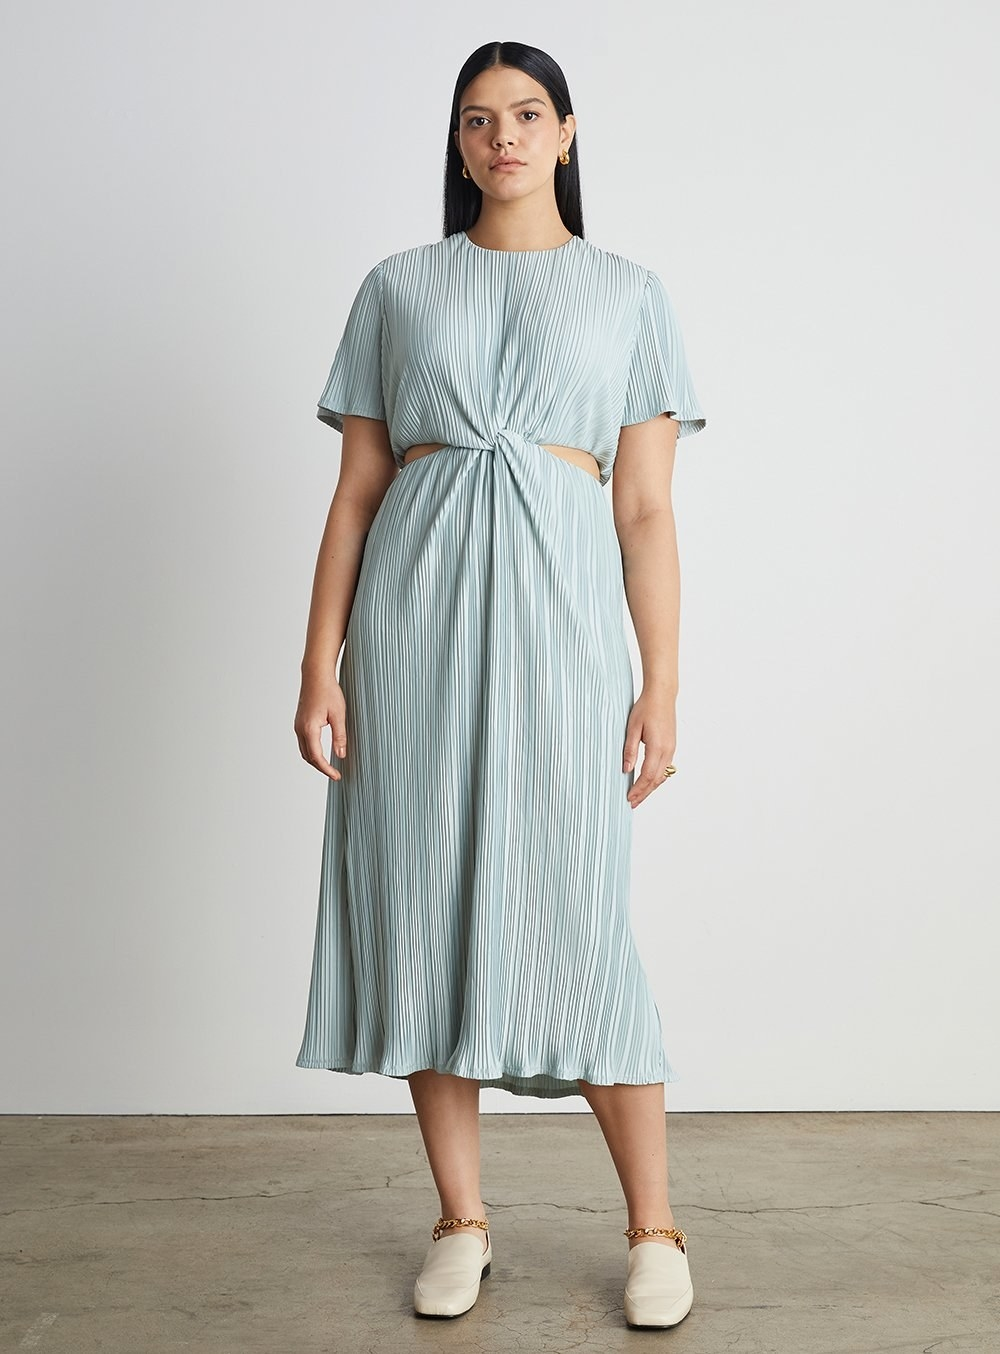 model wearing the midi pleated dress with short-sleeves and cut out sides and back in a light blue